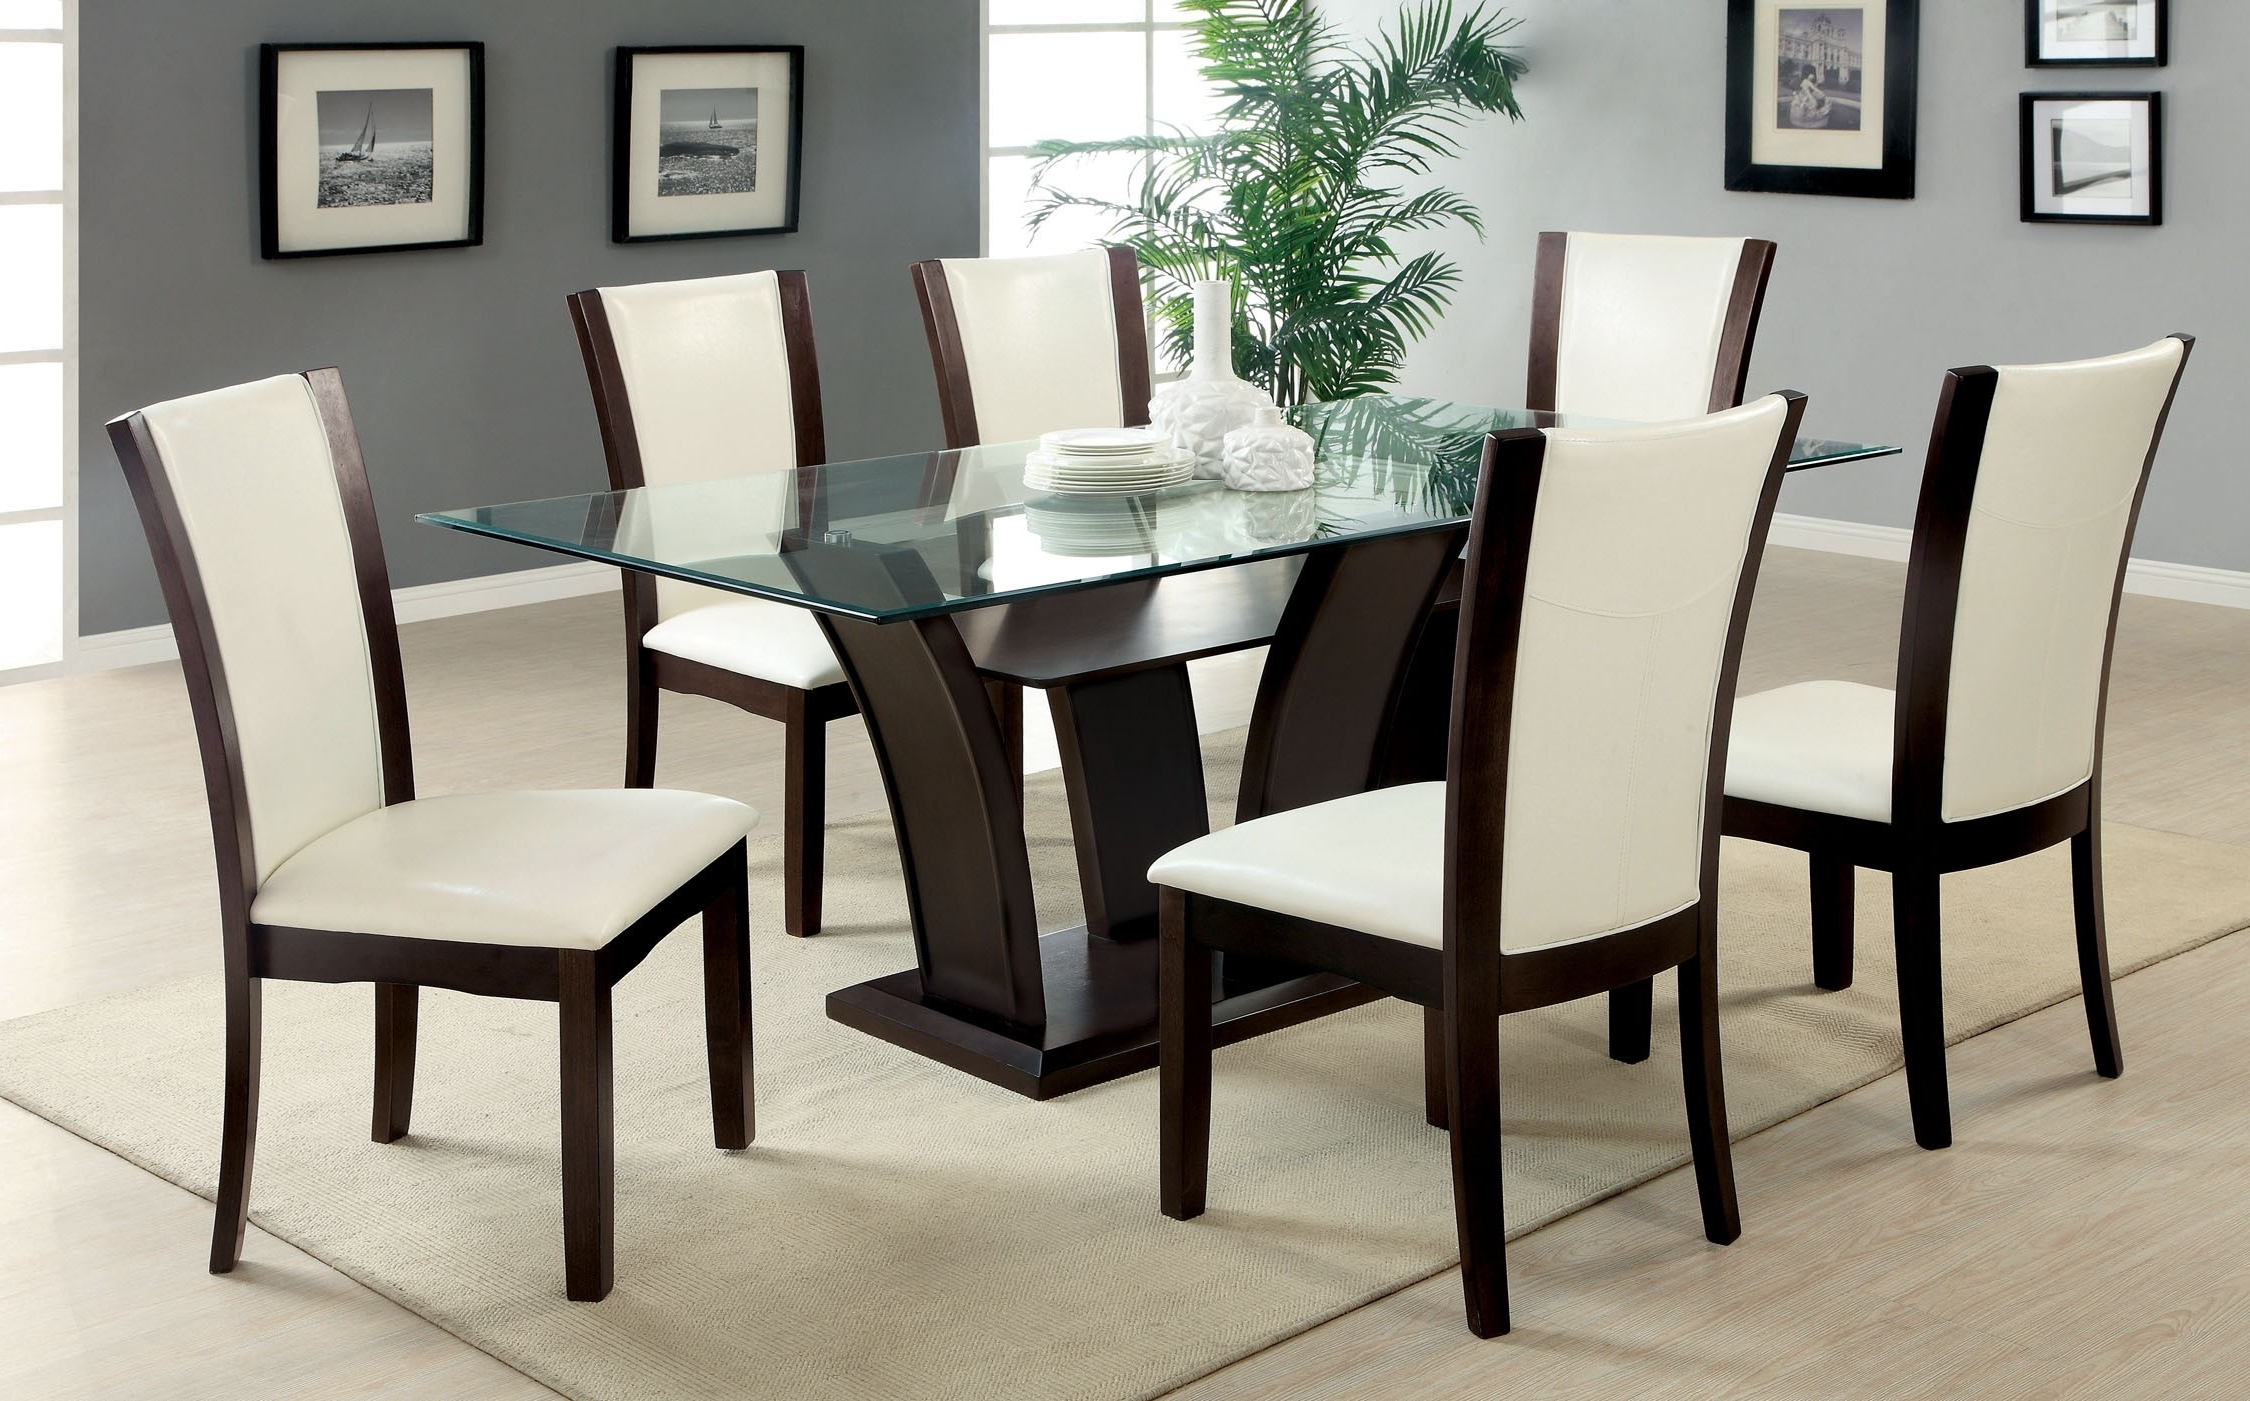 Famous Glass Dining Table Sets 6 Chairs • Table Setting Ideas Throughout Cheap Glass Dining Tables And 6 Chairs (Gallery 1 of 25)